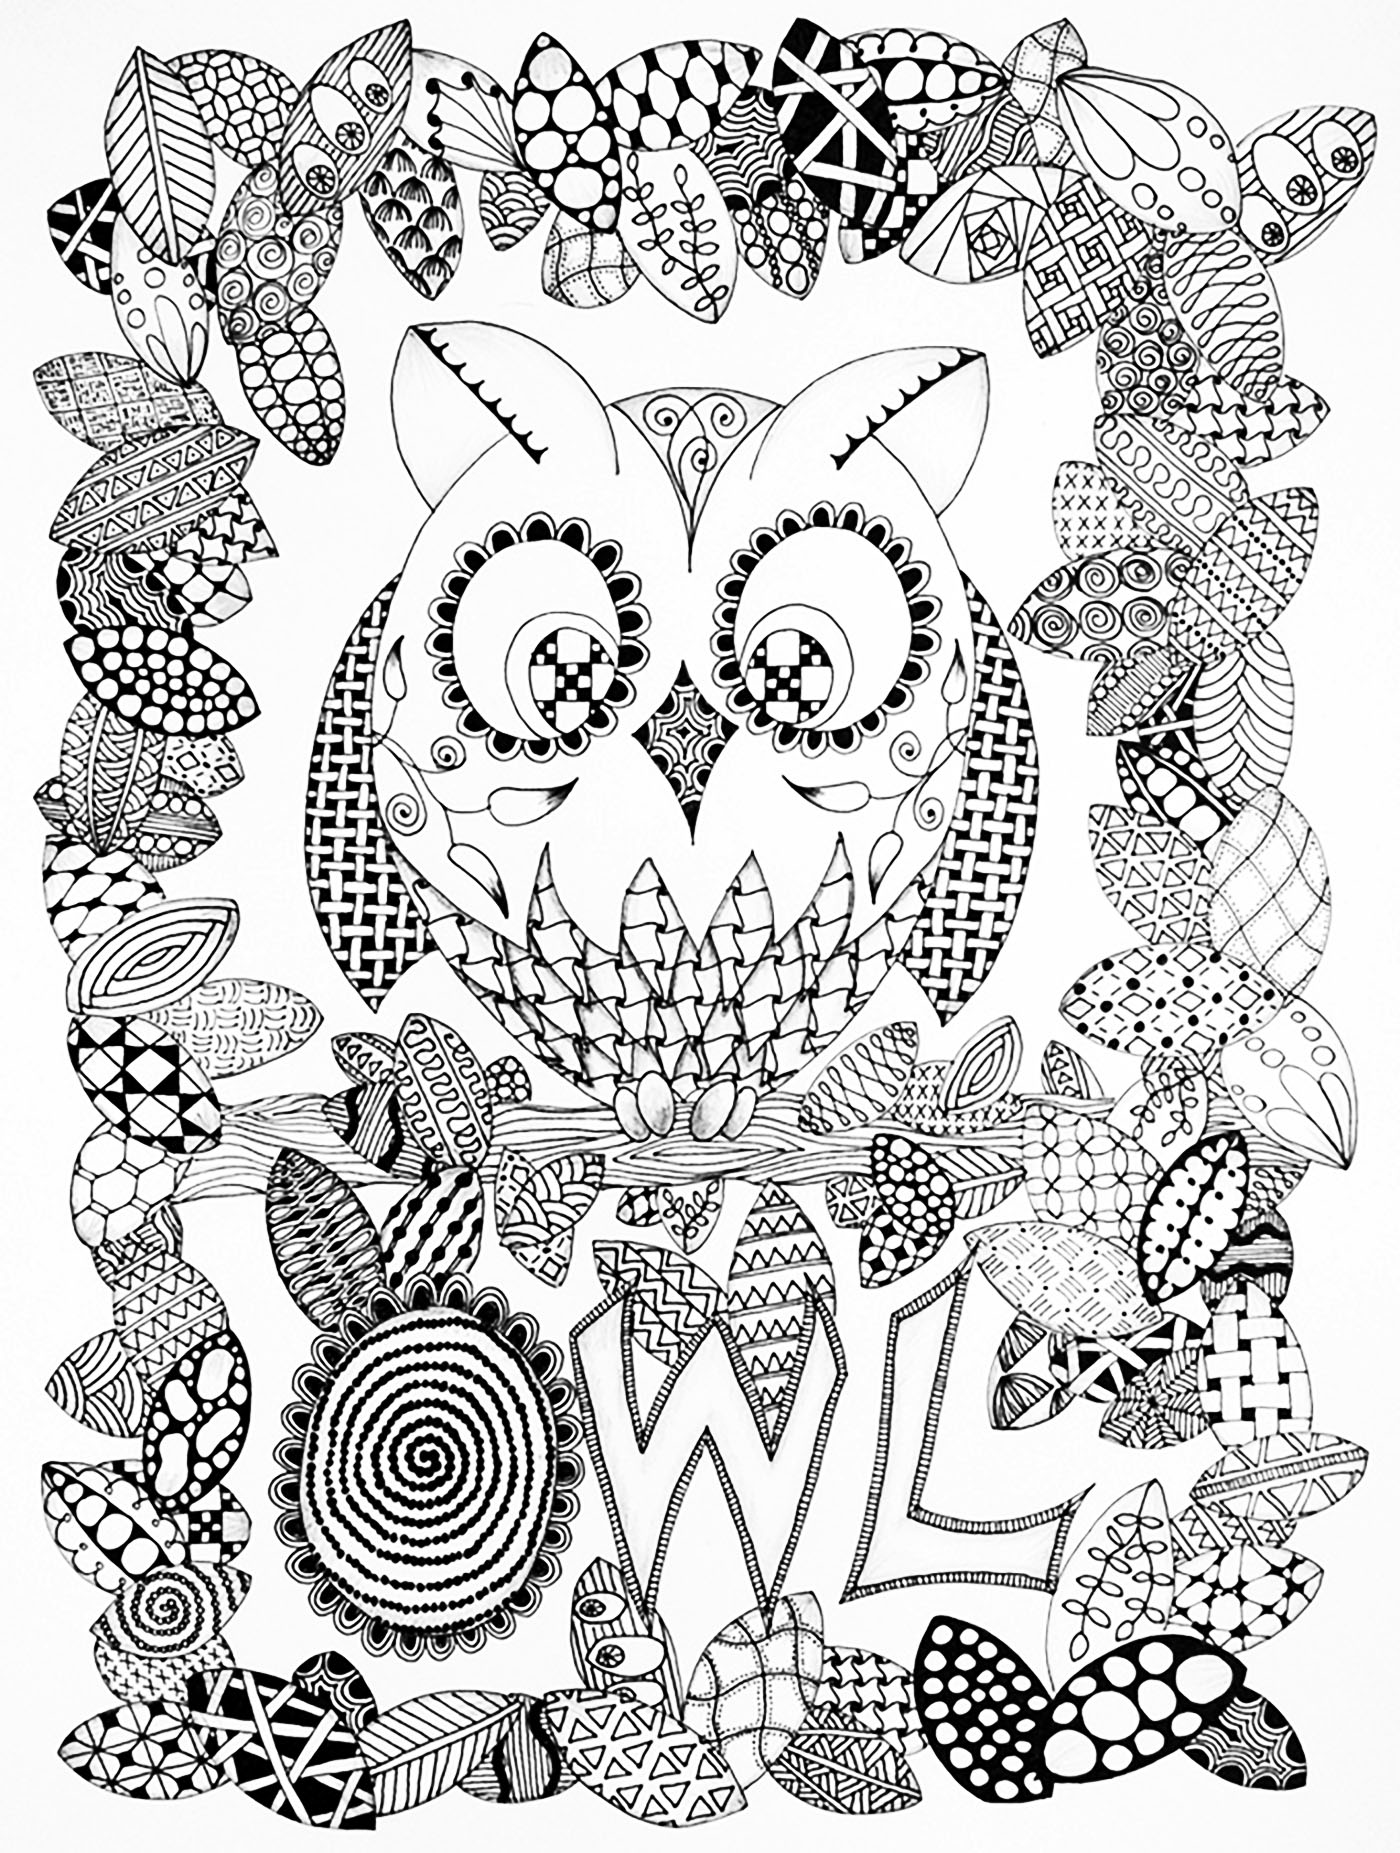 Zentangle coloring pages printable - Coloring Pages For Kids Rose Zentangle